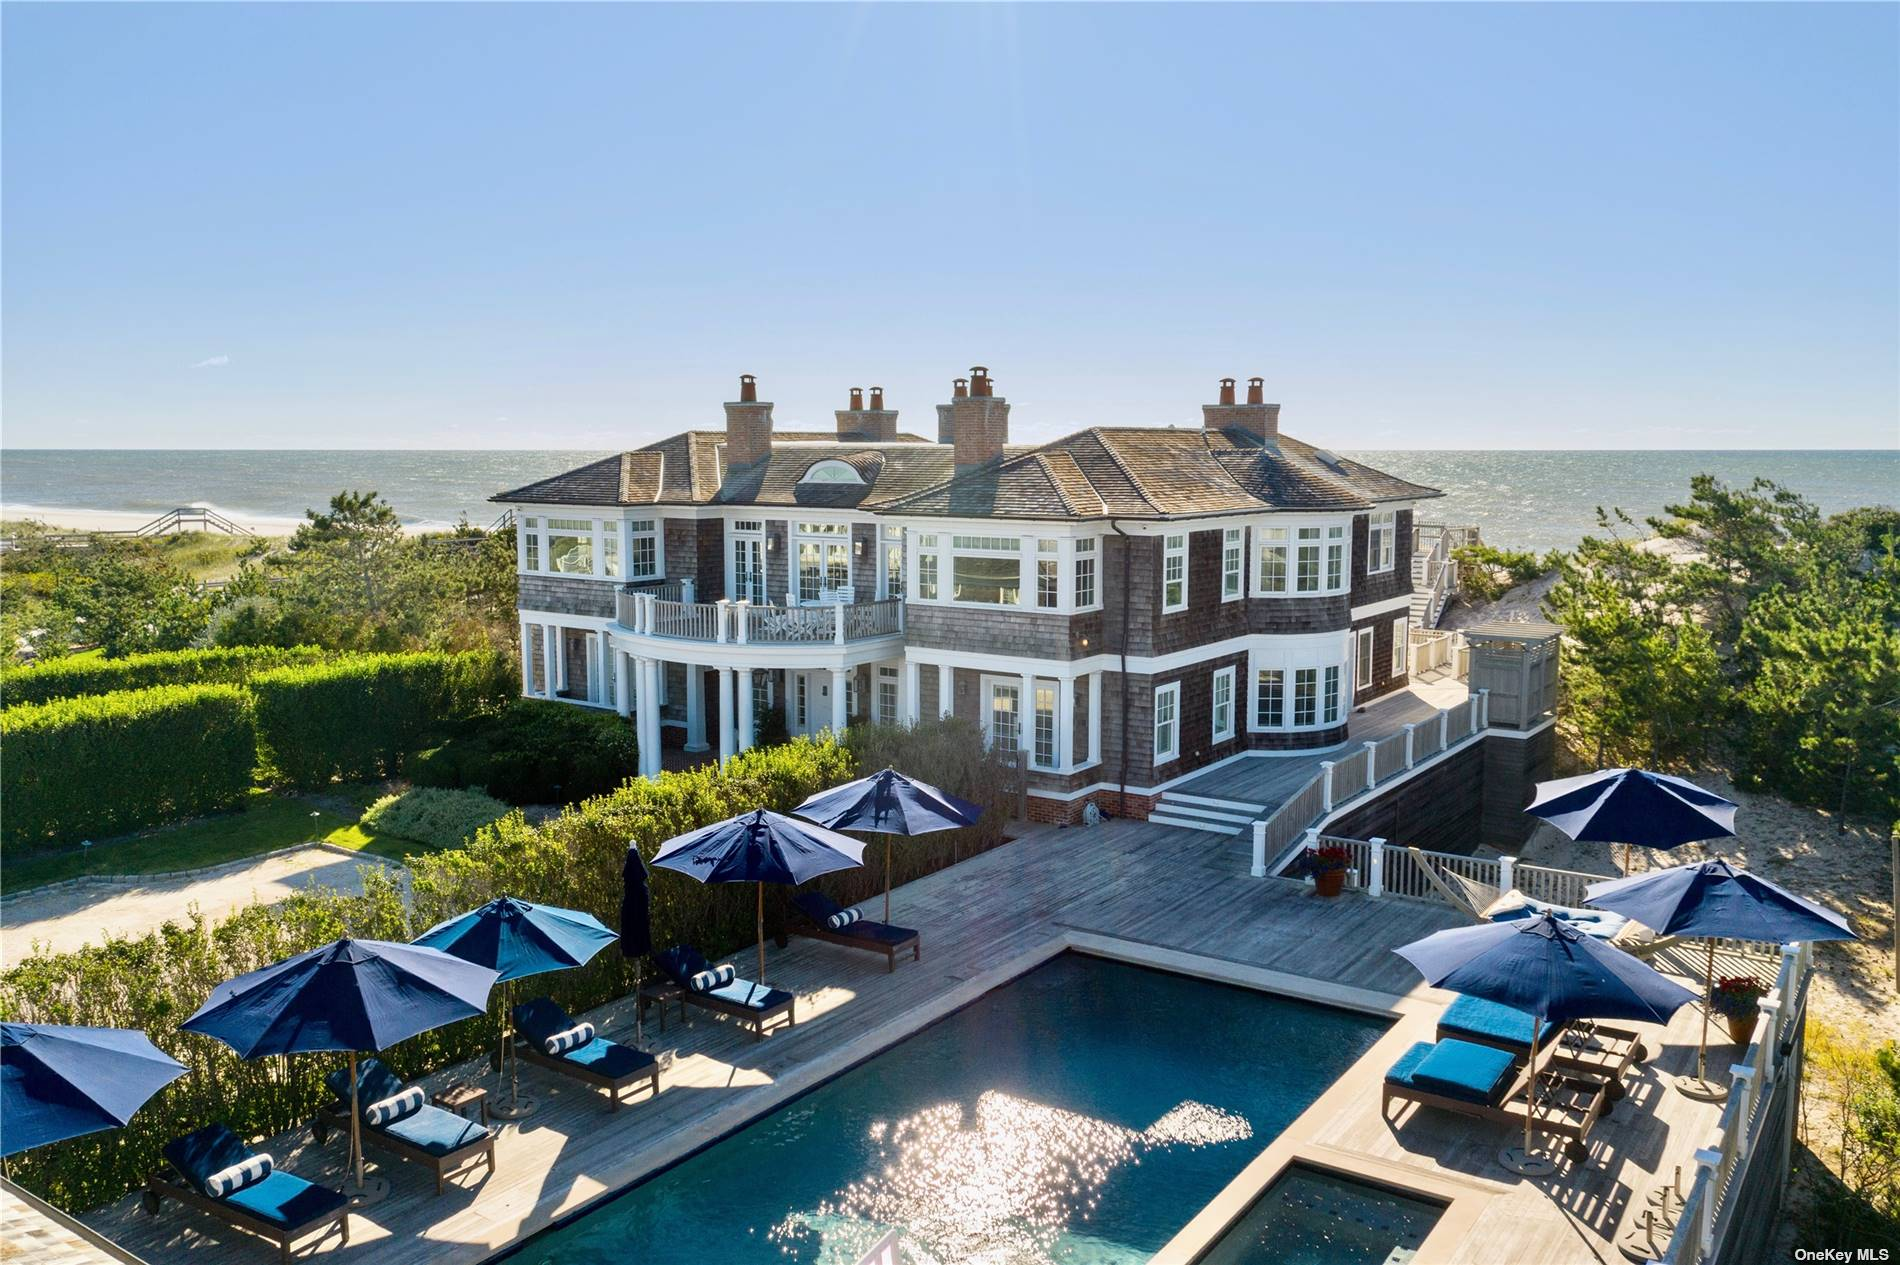 Extraordinary panoramic ocean to bay views. Over 2 acres with 167 feet of ocean frontage. This impressive beach front estate consists of a 7,000 sq. ft. main house, 3-bedroom guest cottage and pool/entertainment house. This traditional shingle-style home, designed by Stuart Disston, includes many unique features. The main floor features a large living room with fireplace with doors leading to a deck overlooking the ocean, a family room, formal dining room, chef's kitchen with views of Shinnecock Bay, breakfast room, library, and sumptuous master suite. The lower floor consists of six bedroom suites, movie theater and play room. The guest cottage has three bedrooms, kitchen/living room. The pool house features a large entertainment room, cooking facility, gym and two baths . A large swimming pool with spa and a har-tru tennis court await your pleasure. Impressive by any standard, this significant beachfront property is now available.